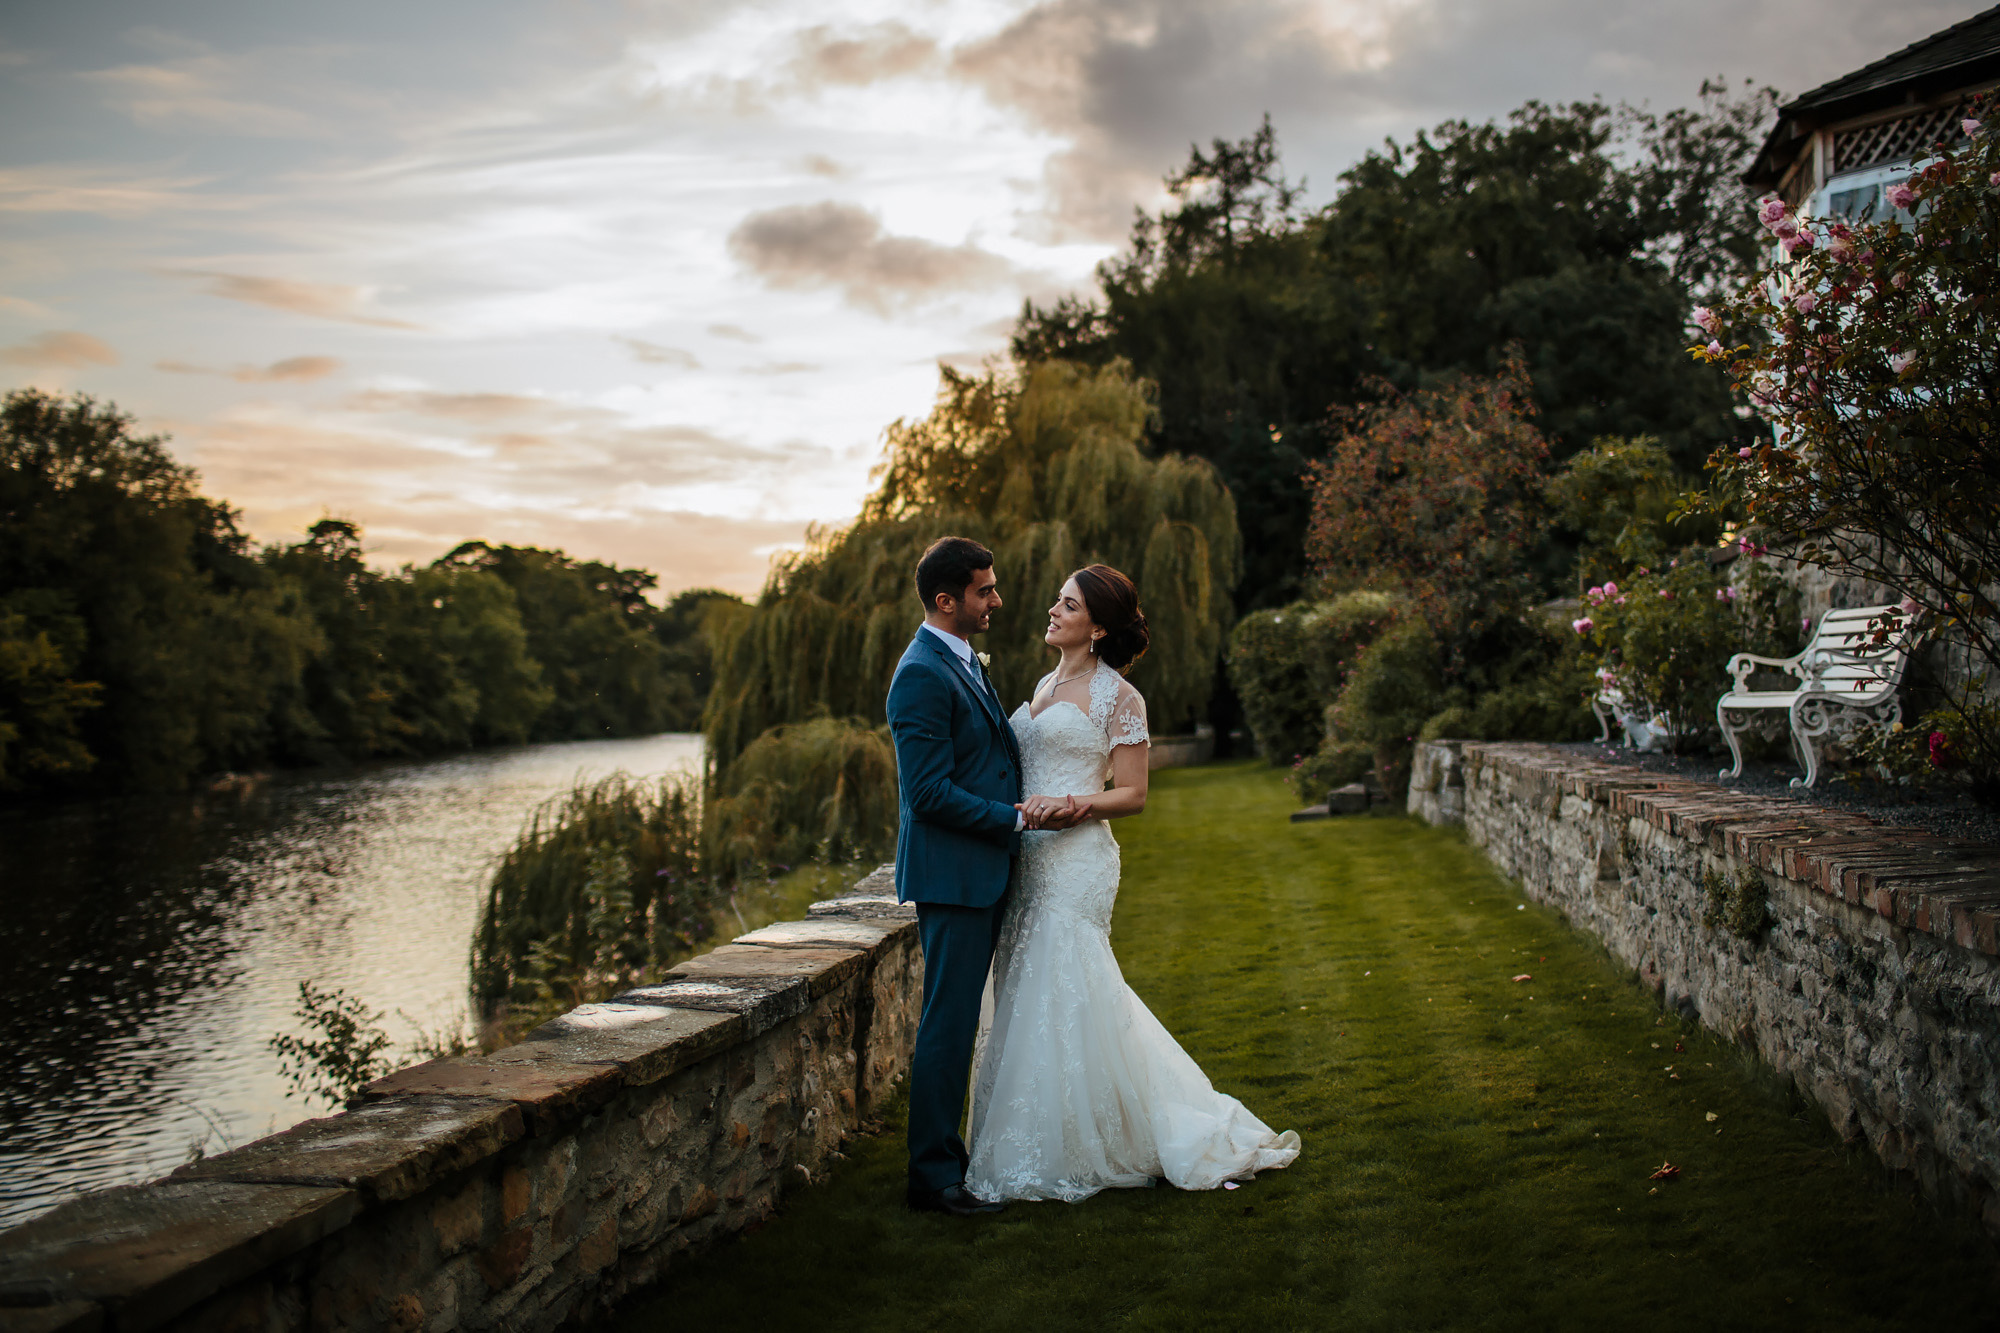 Sunset wedding portrait by a Yorkshire river